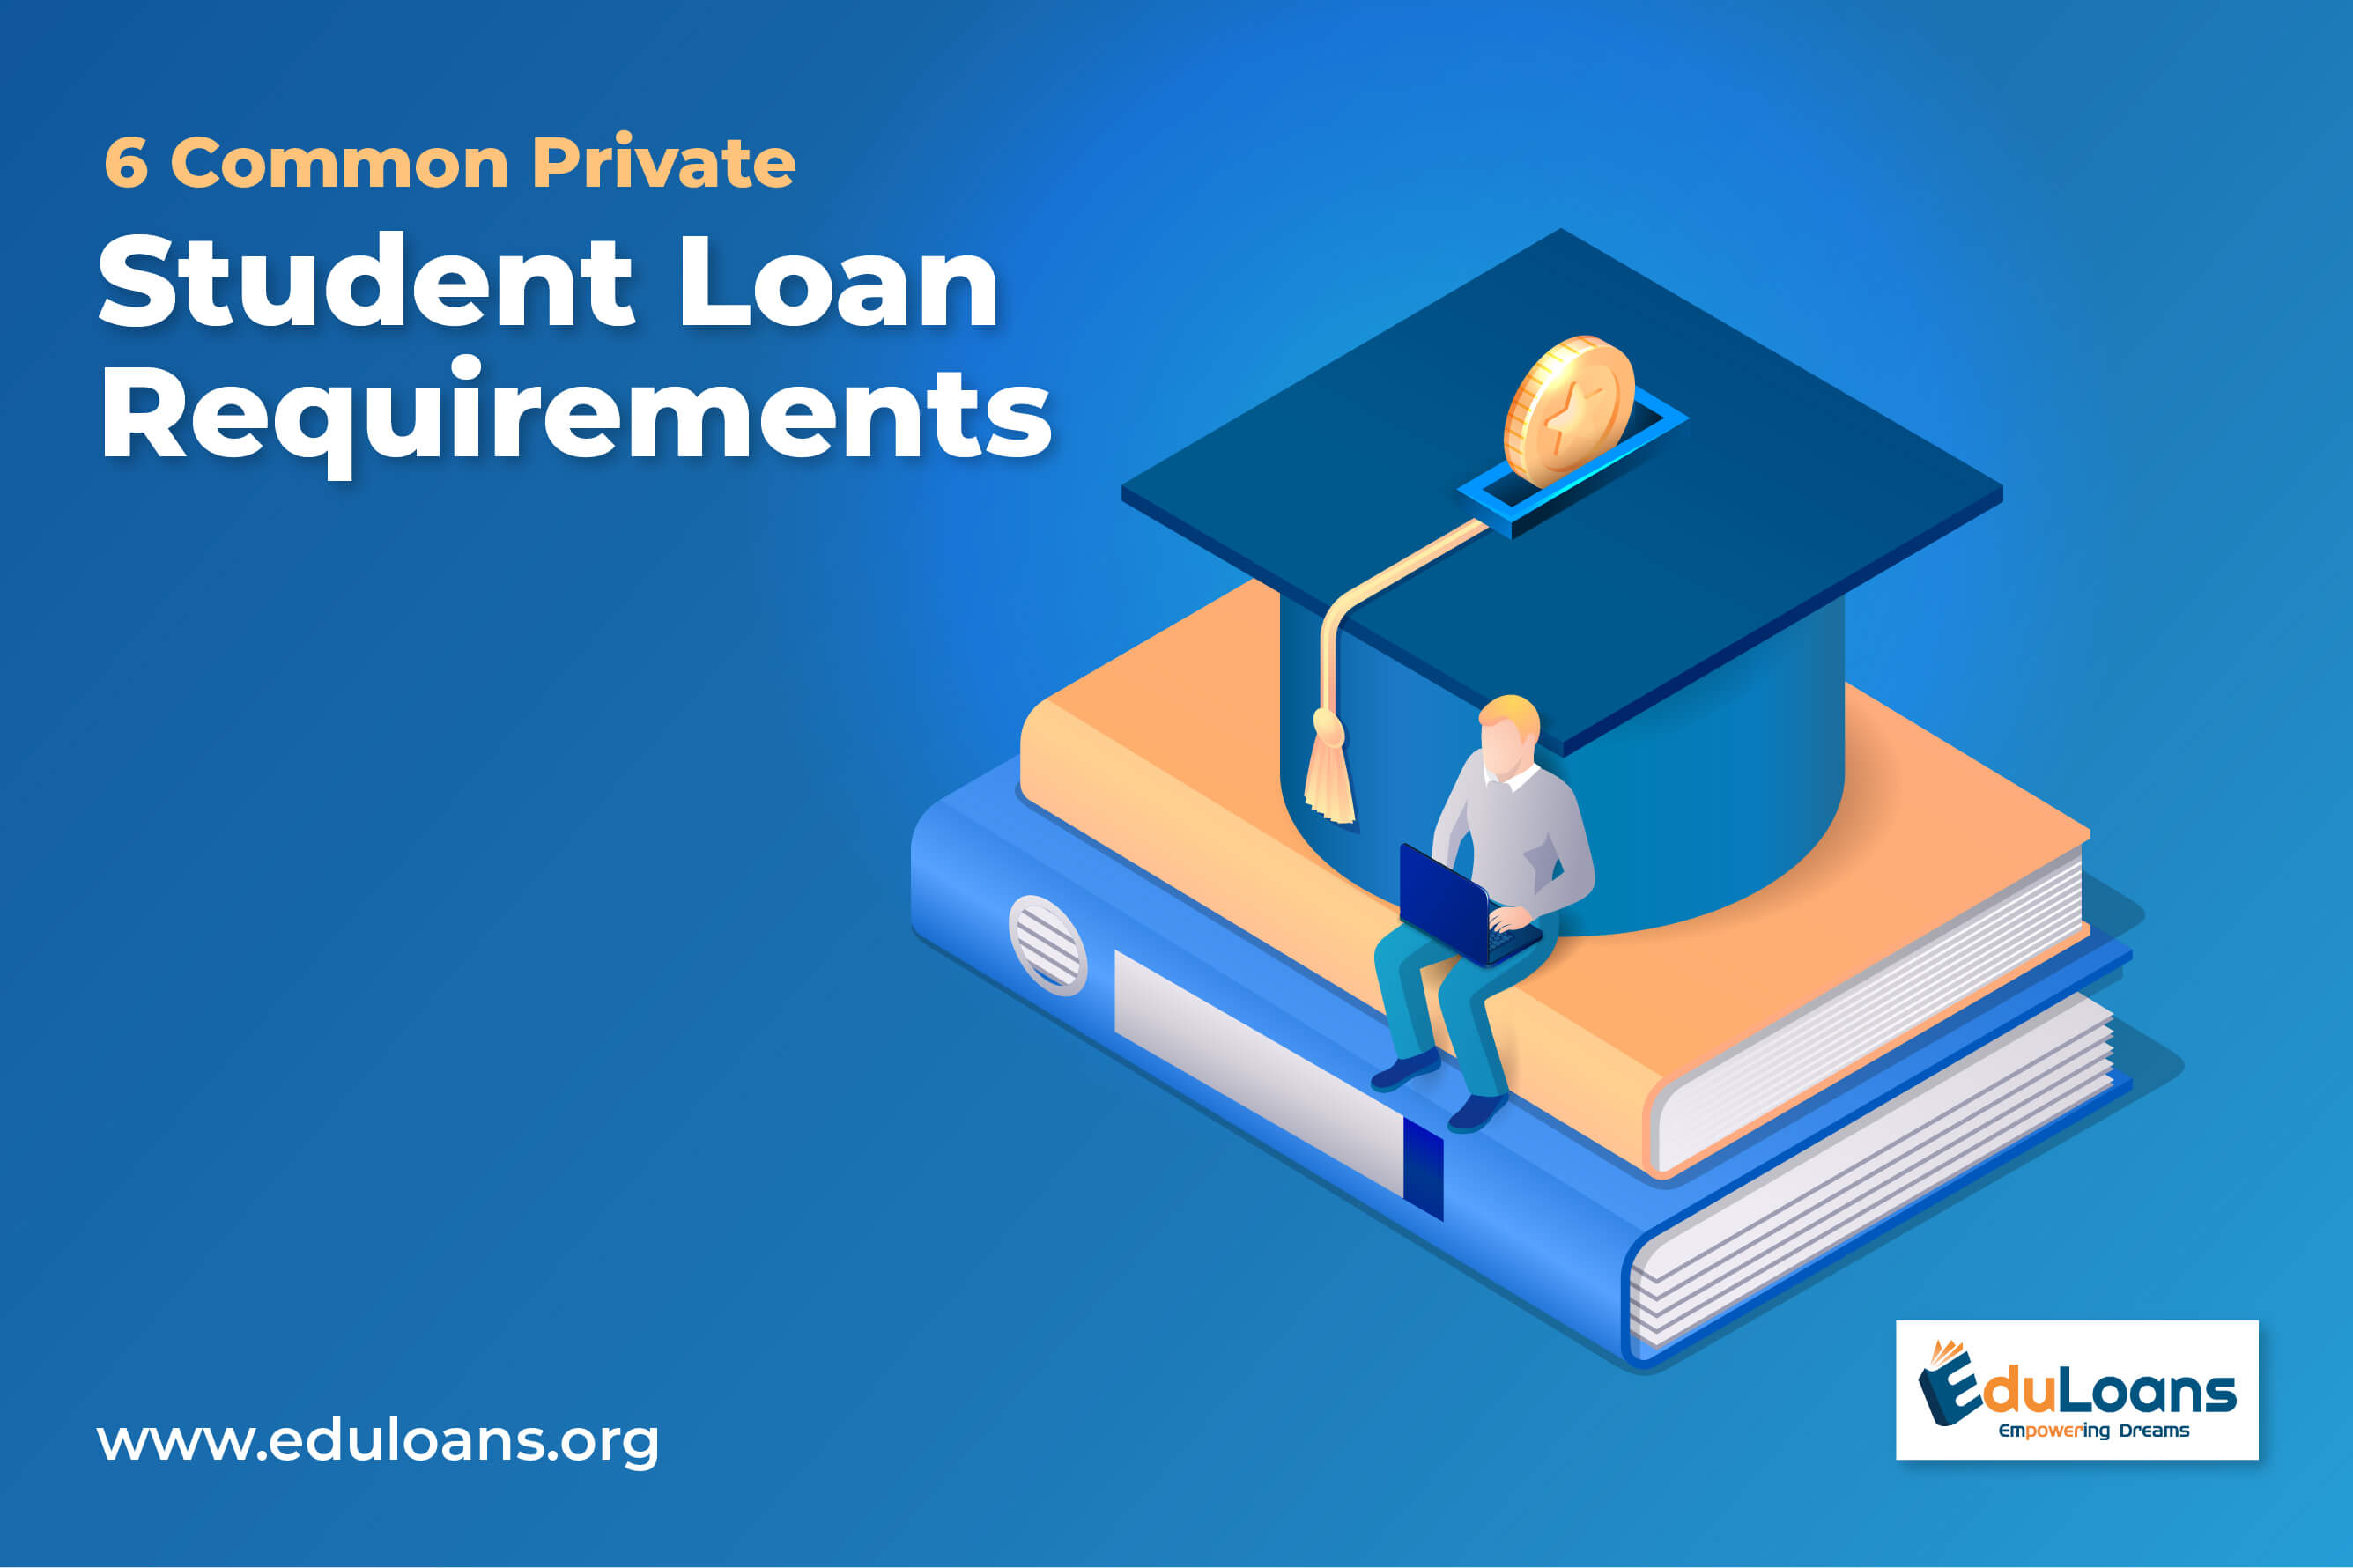 6 Common Private Student Loan Requirements